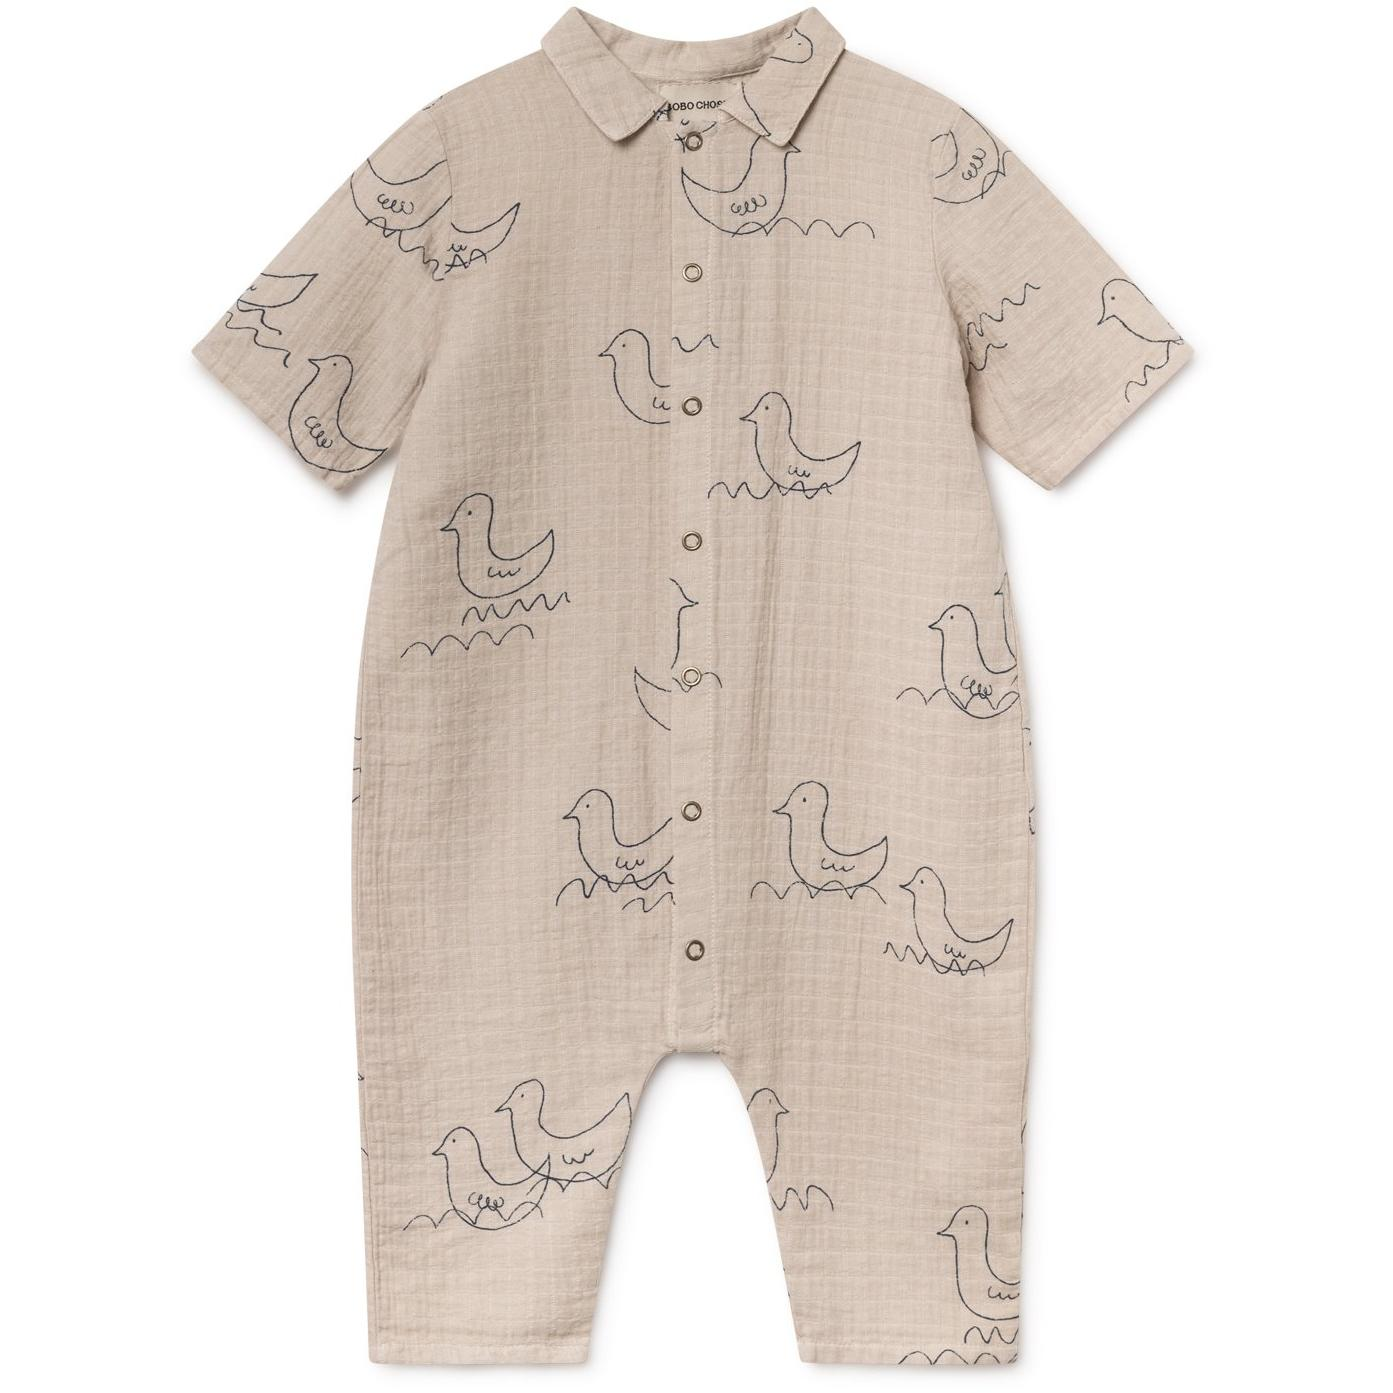 bobo choses baby geese buttons playsuit